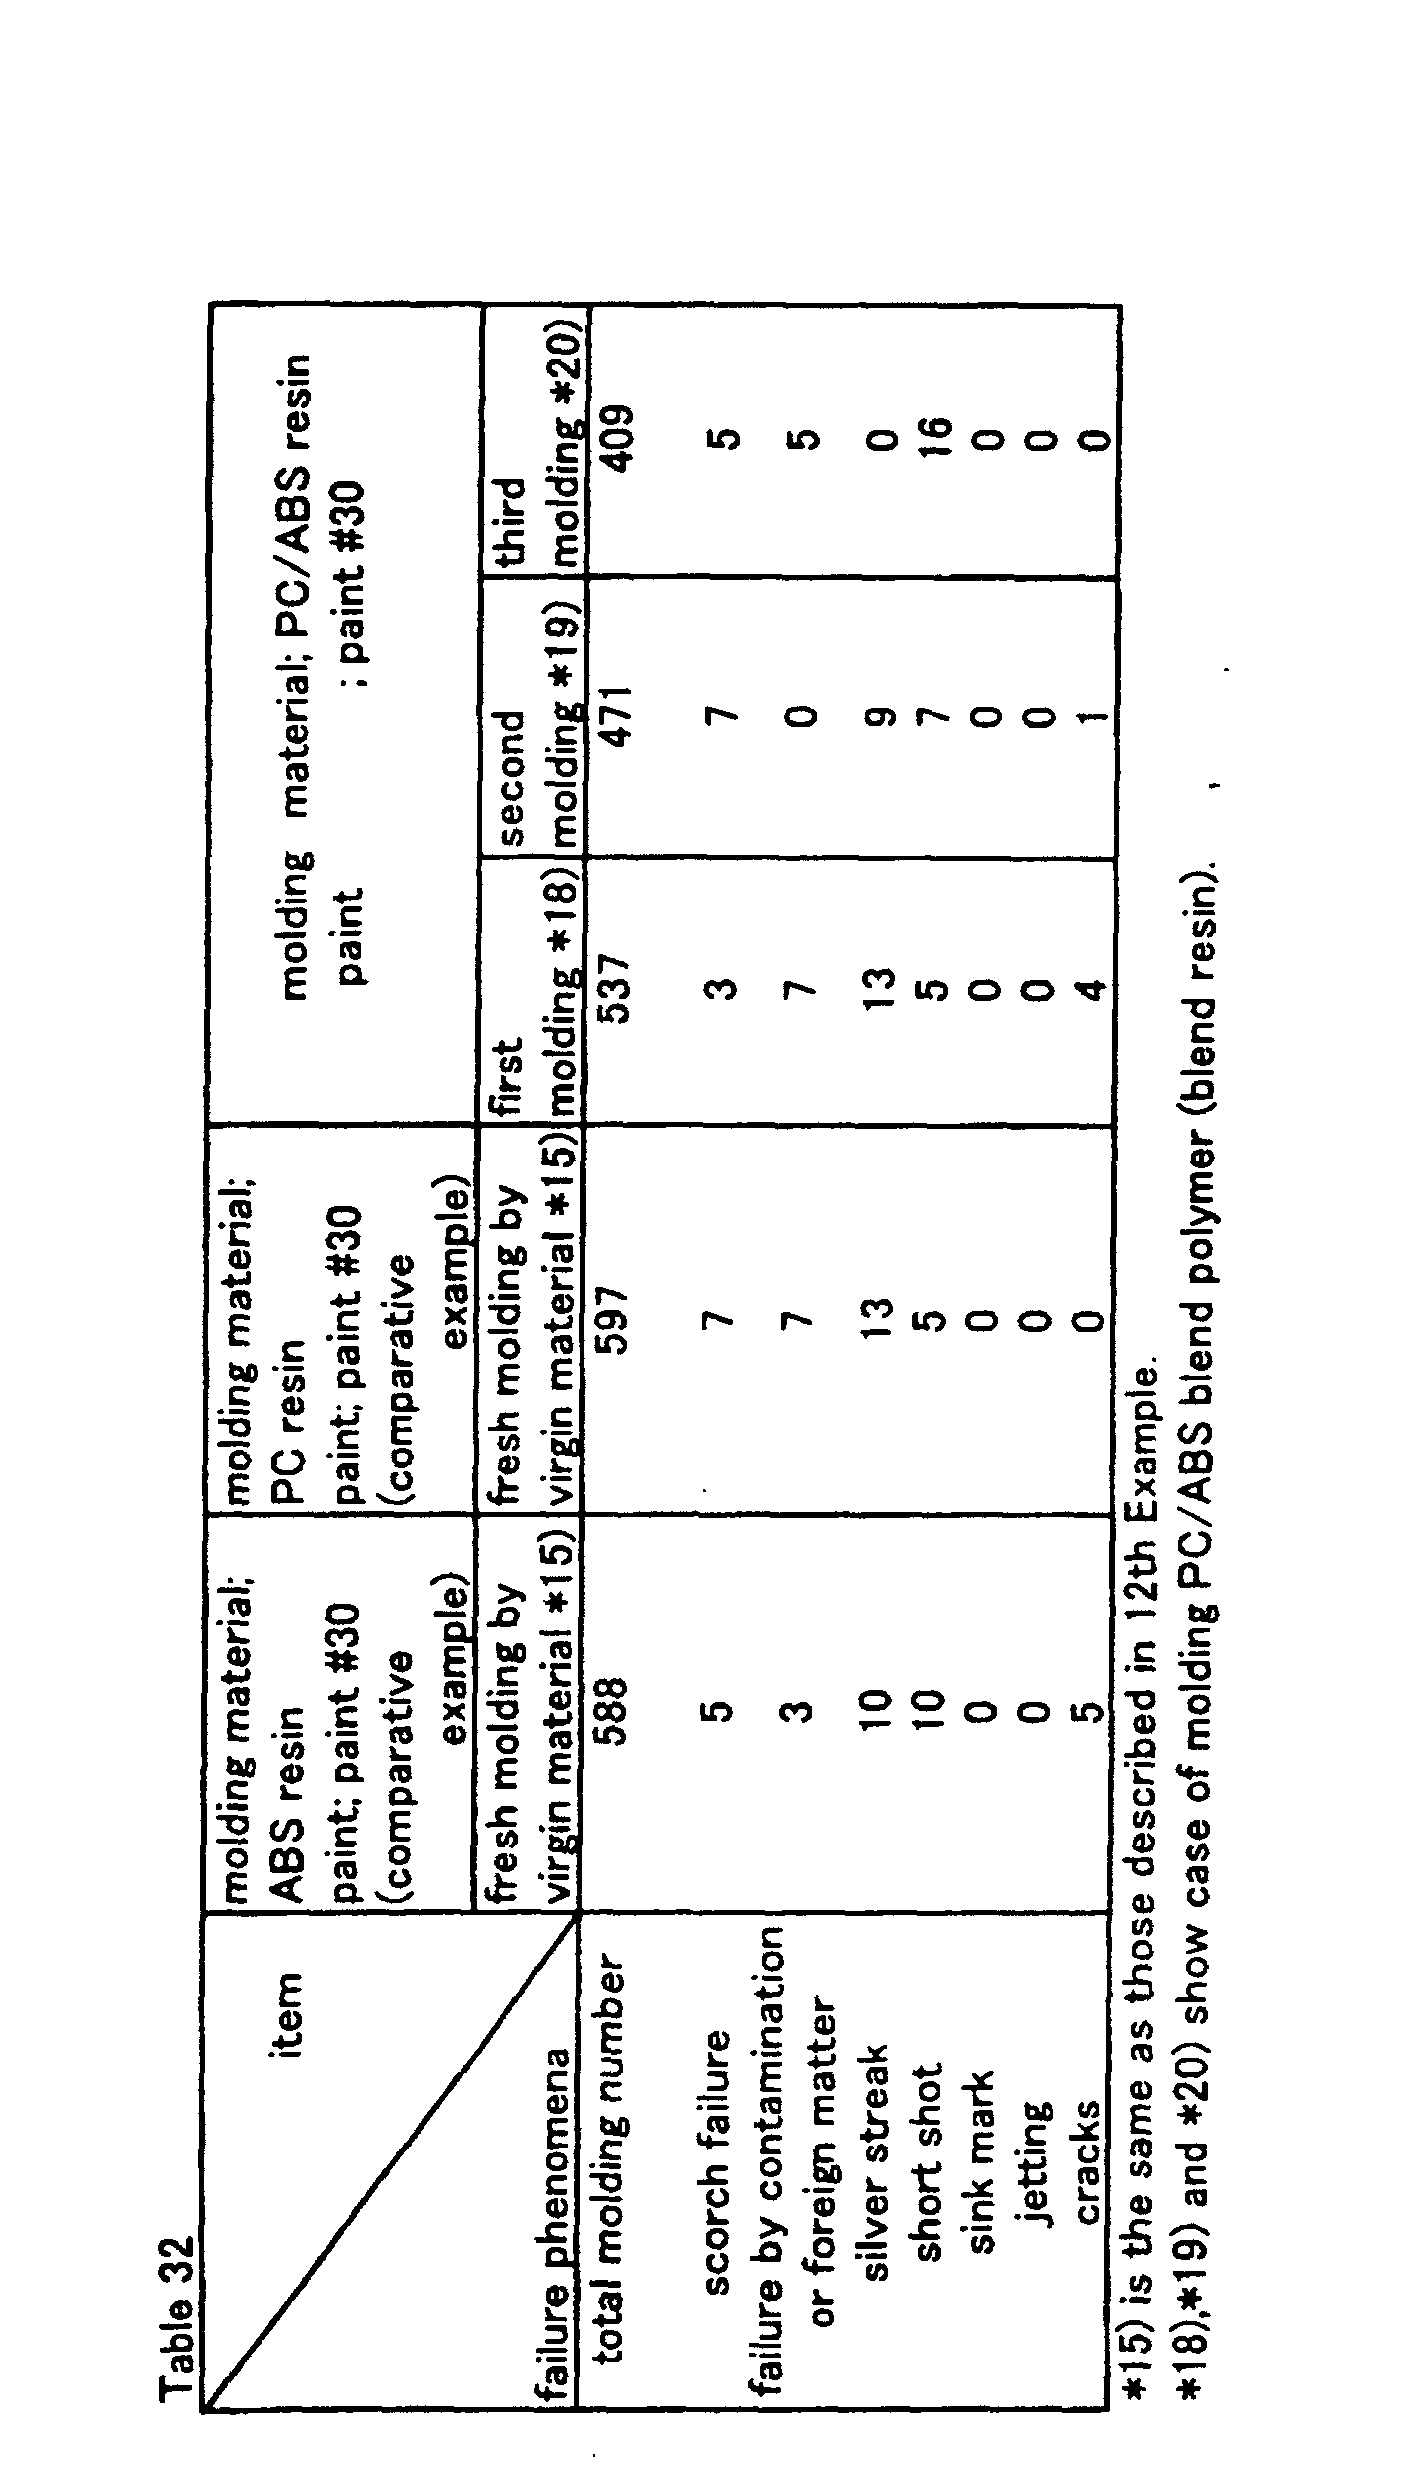 EP0906817B1 - Coated molded article, method of recycling the same